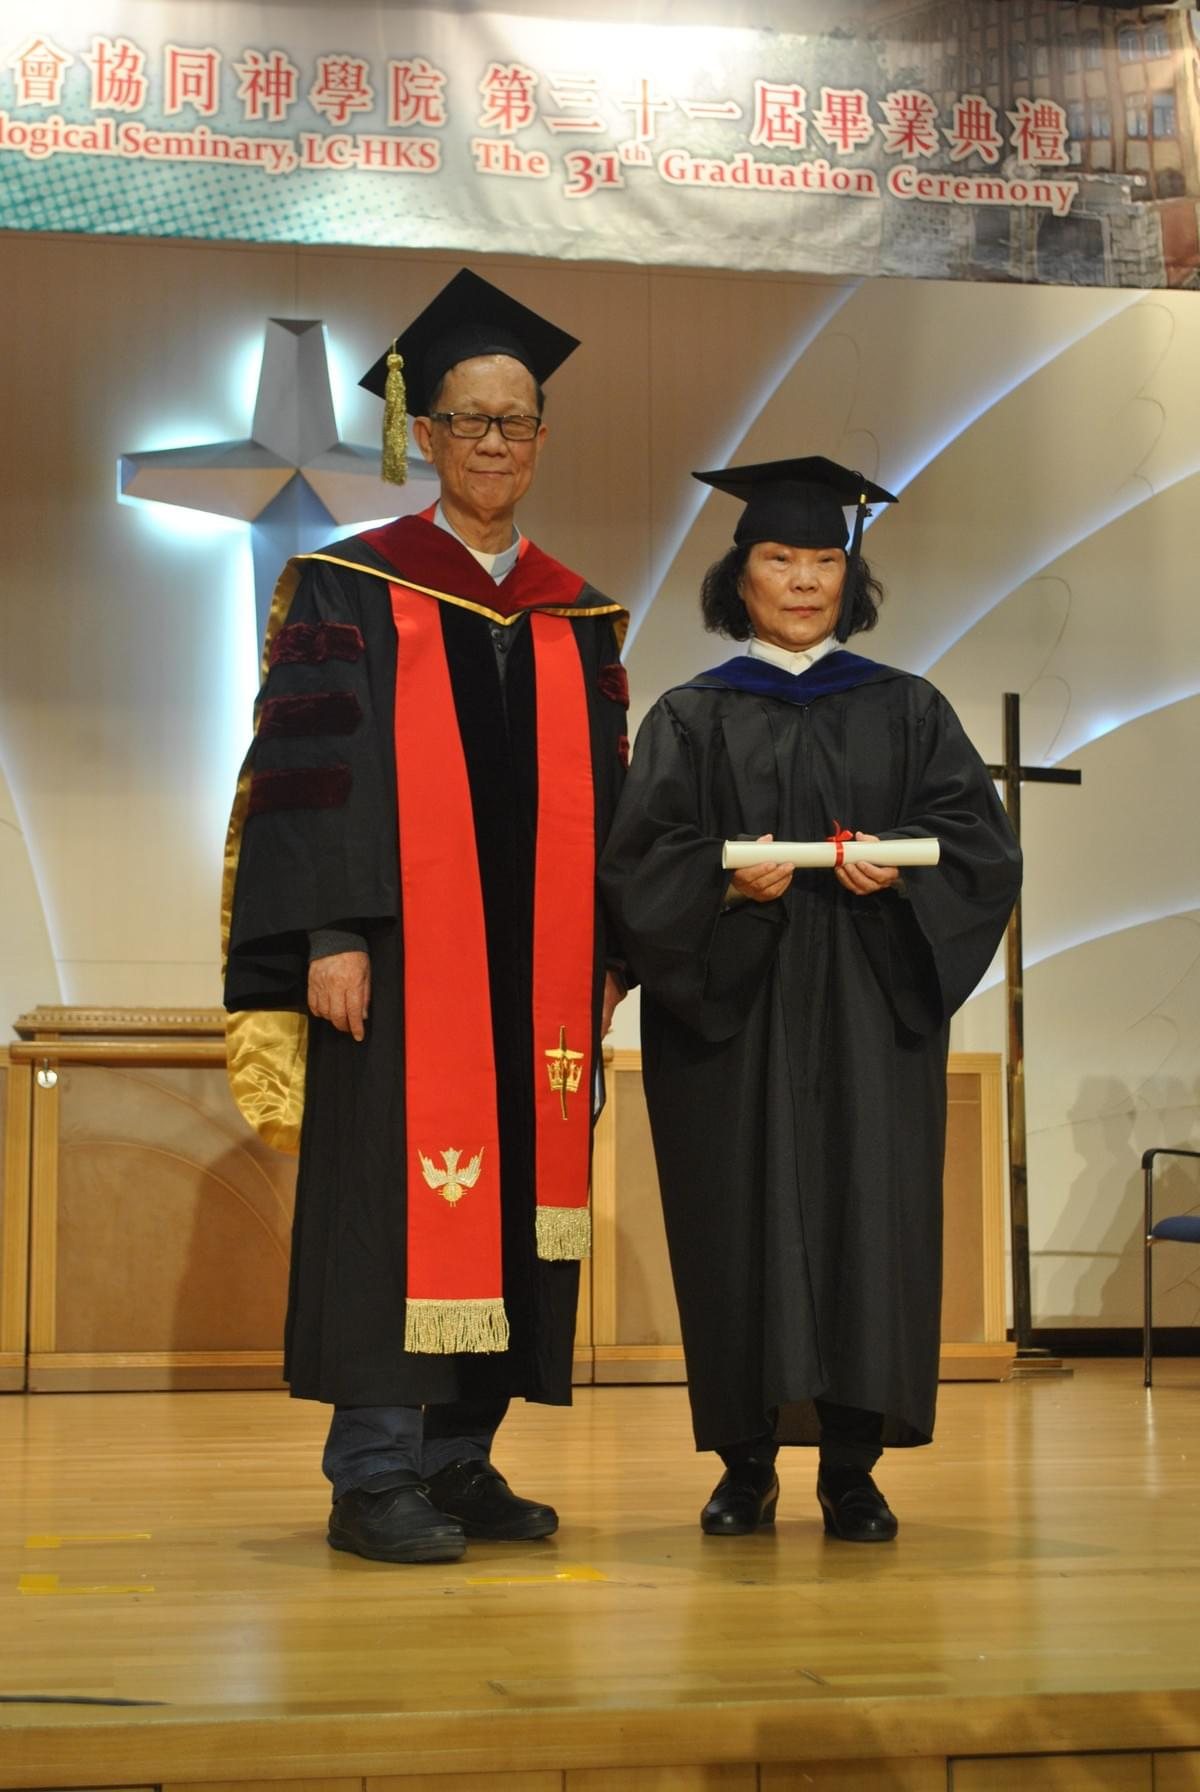 Dr. IP and Ms. CHEUNG Hee [B. Th.]